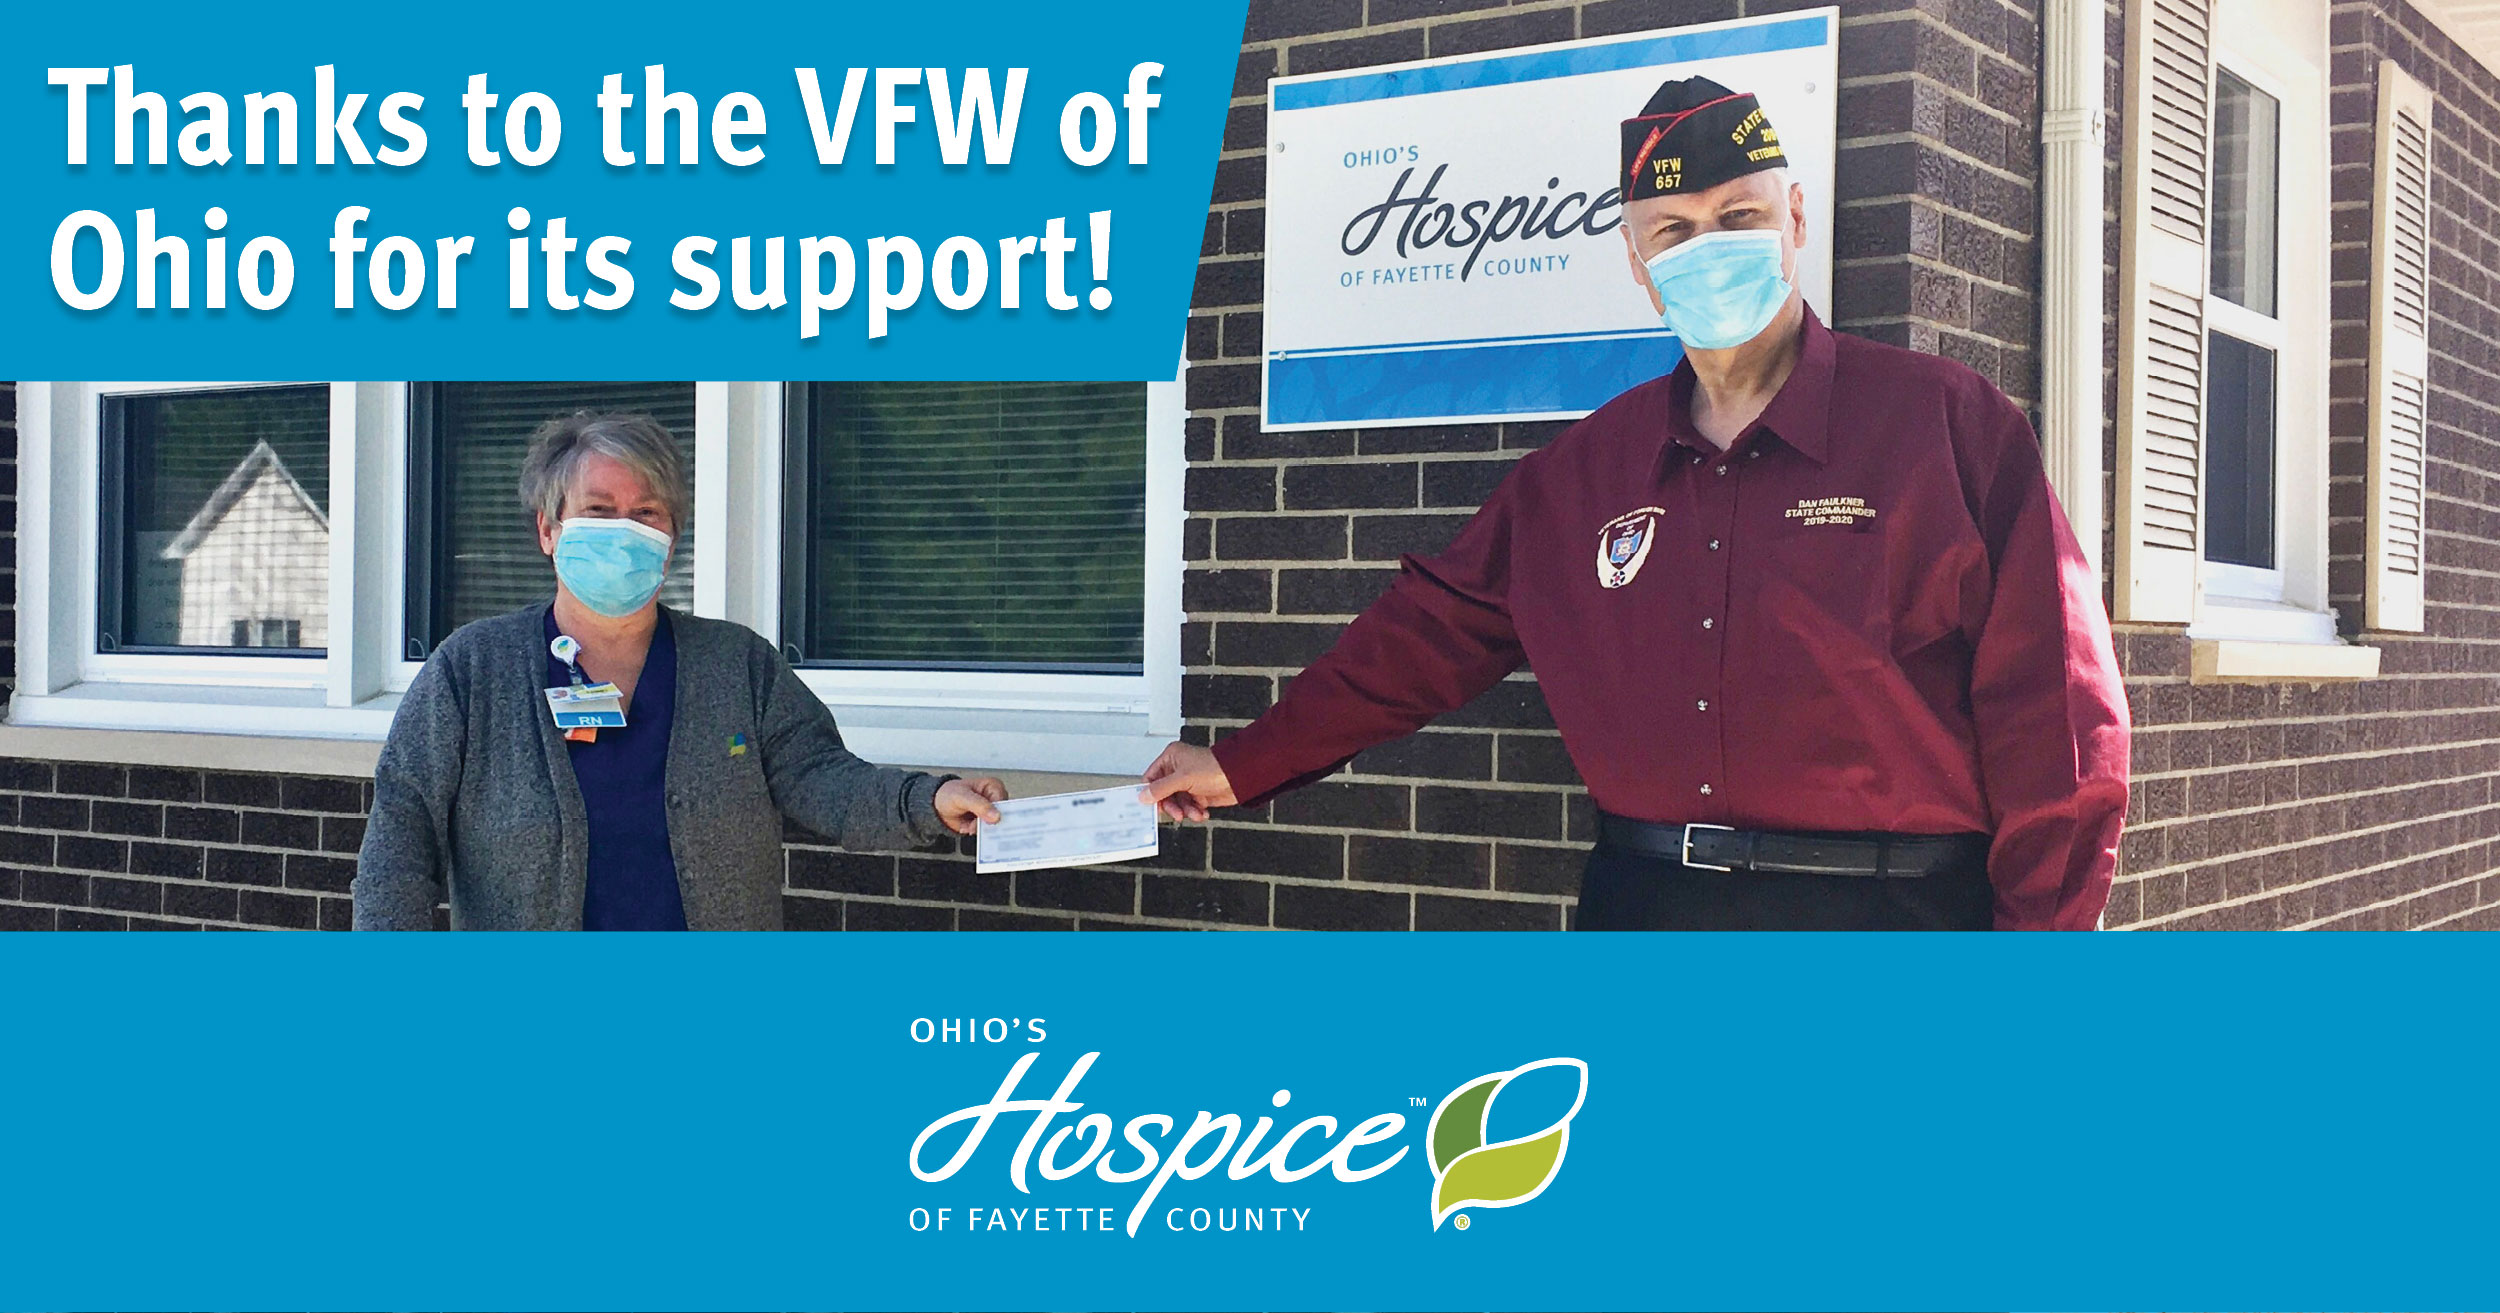 VFW Awards Grant To Ohio's Hospice Of Fayette County